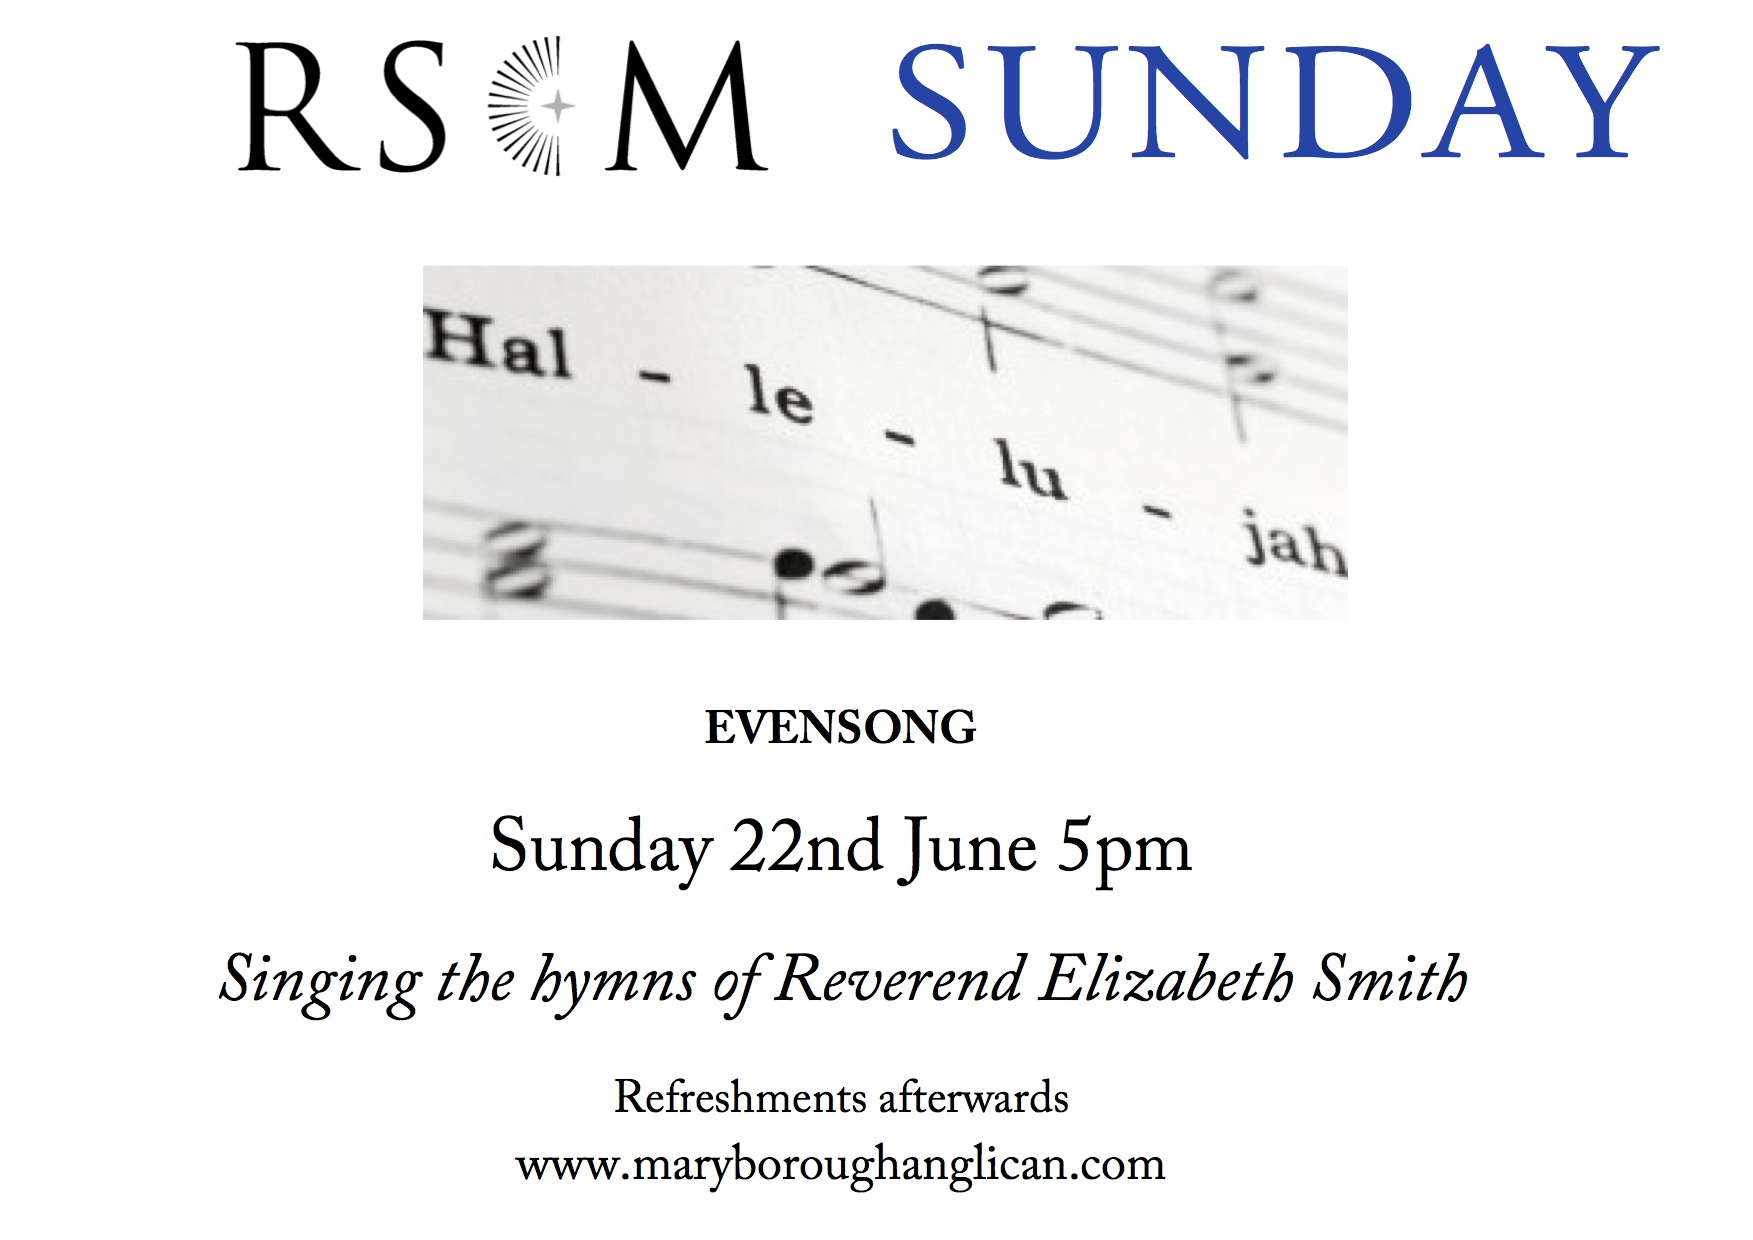 RSCM Sunday Evensong